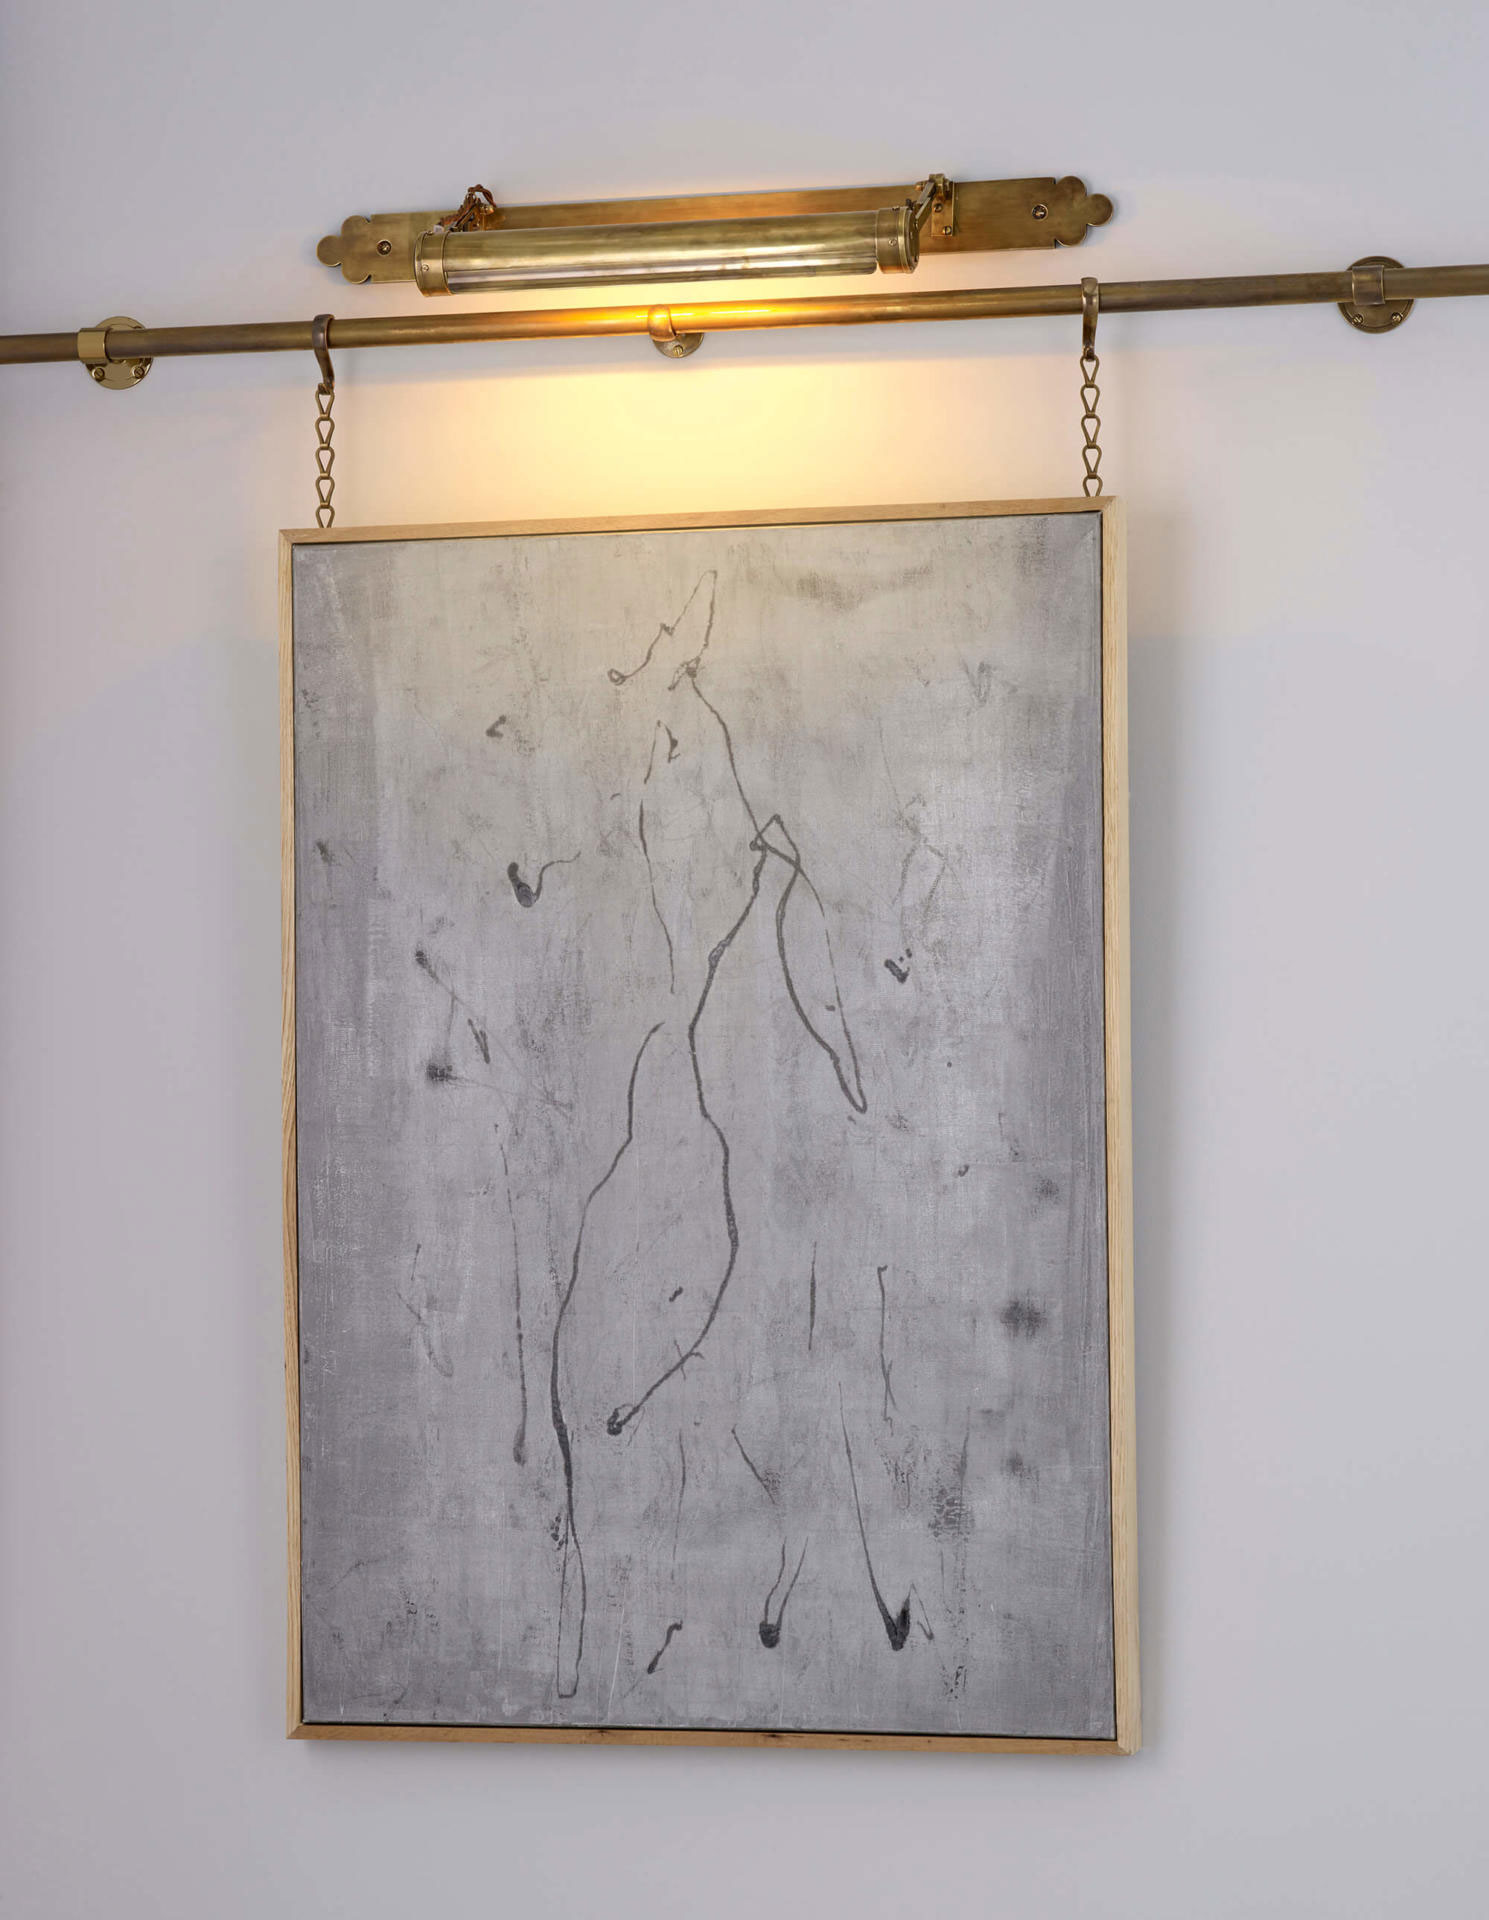 Art hanging with brass picture rail